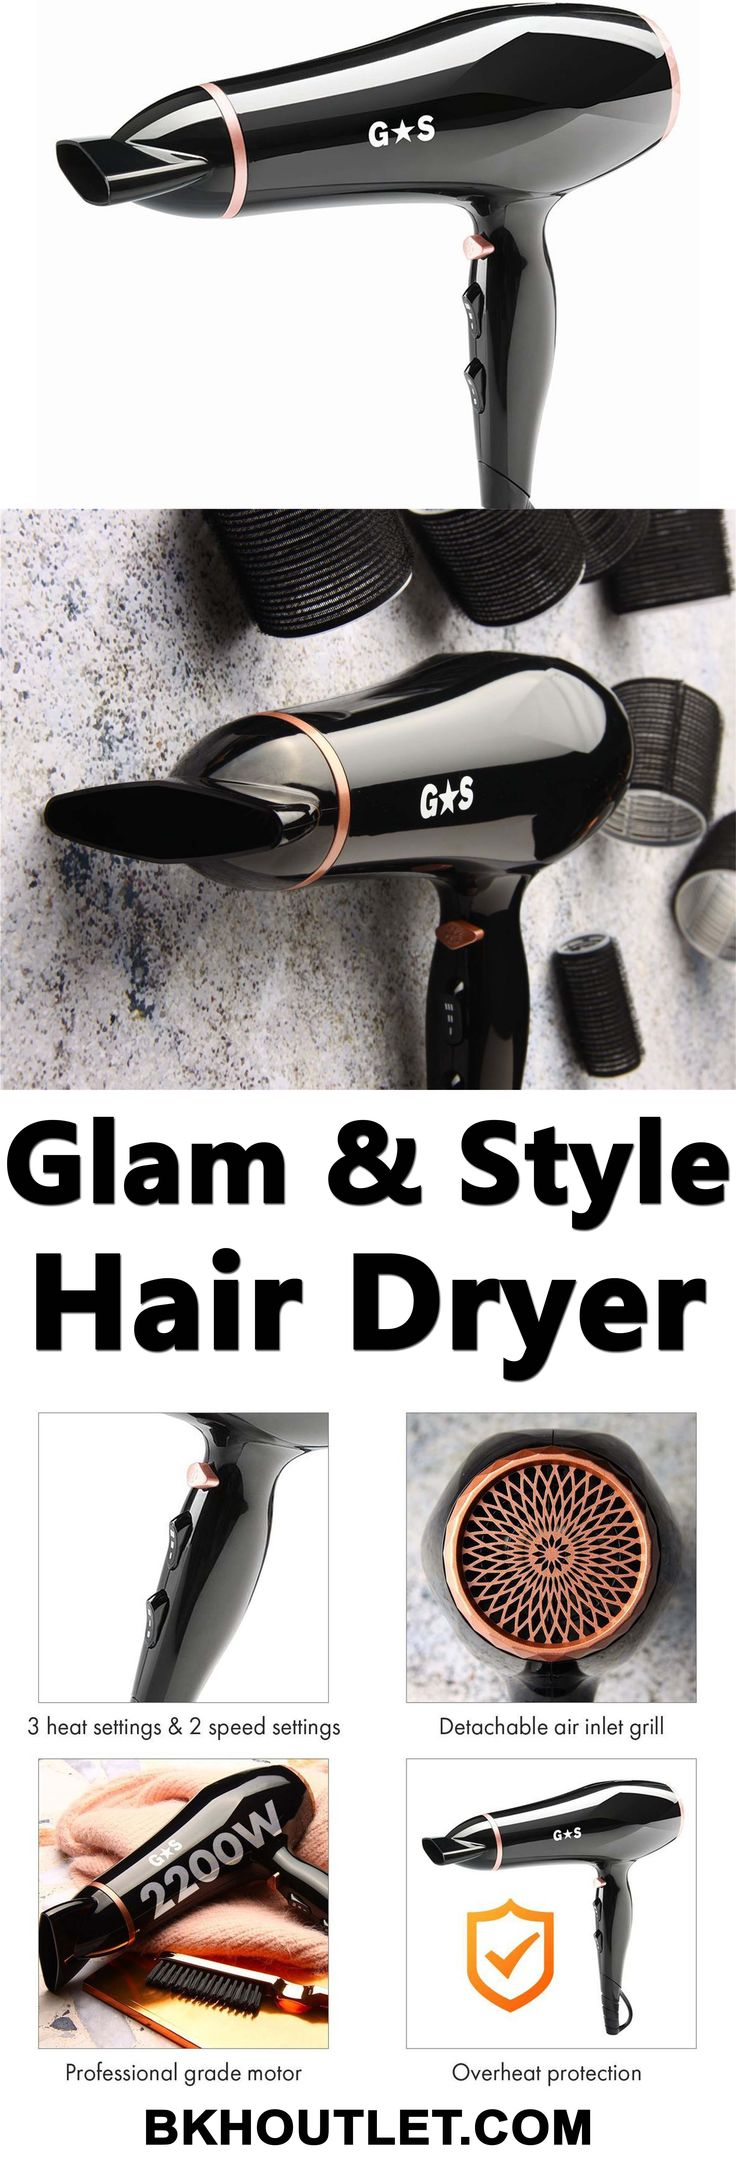 A HIGH-QUALITY HAIR STYLING BRAND AT AFFORDABLE PRICE All Glam & Style Products are inspired by professional hair styling salons. The high quality of all styling tools is convincing as the timeless and luxurious design. │hair care │hair care products │curl hair │curling wands │hair dryers │hair styles │hair removal │bkhoutlet │woman fashion #haircare #haircareproducts #curlhair #curlingwands #hairdryers #hairstyles #hairremoval #bkhoutlet #womanfashion